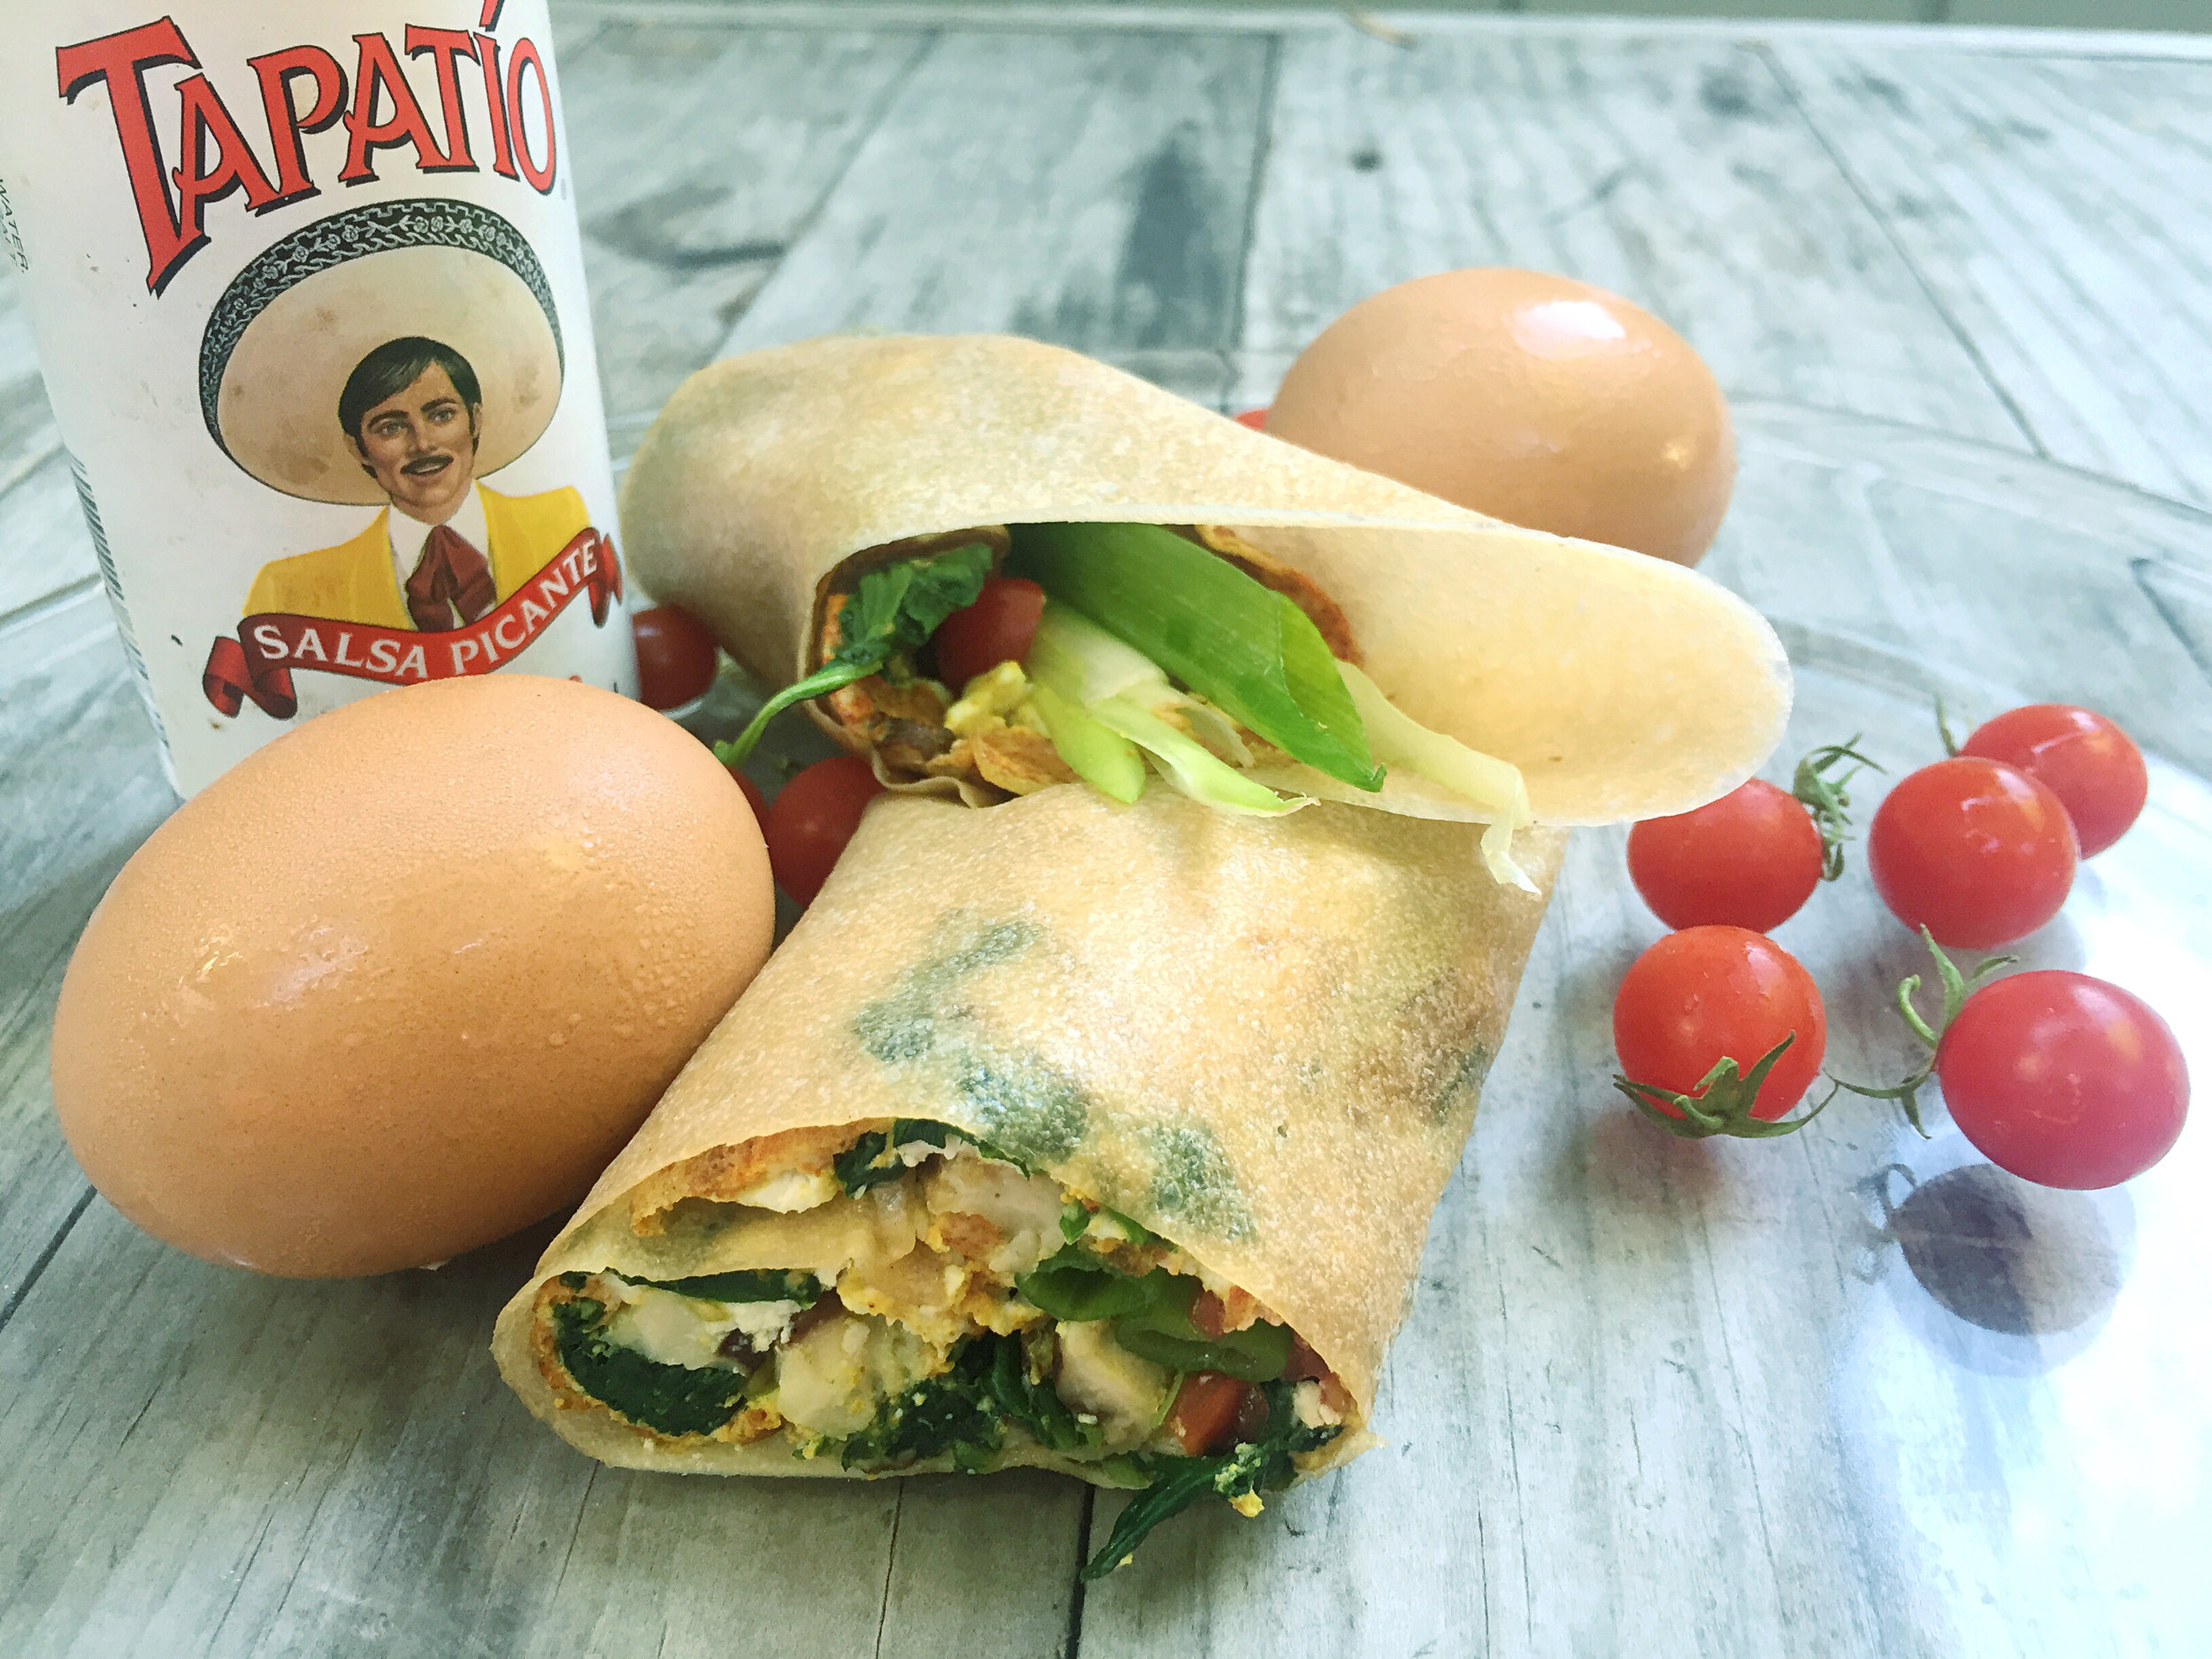 Breakfast! Coconut paleo wrapper with morning grub accoutrement.